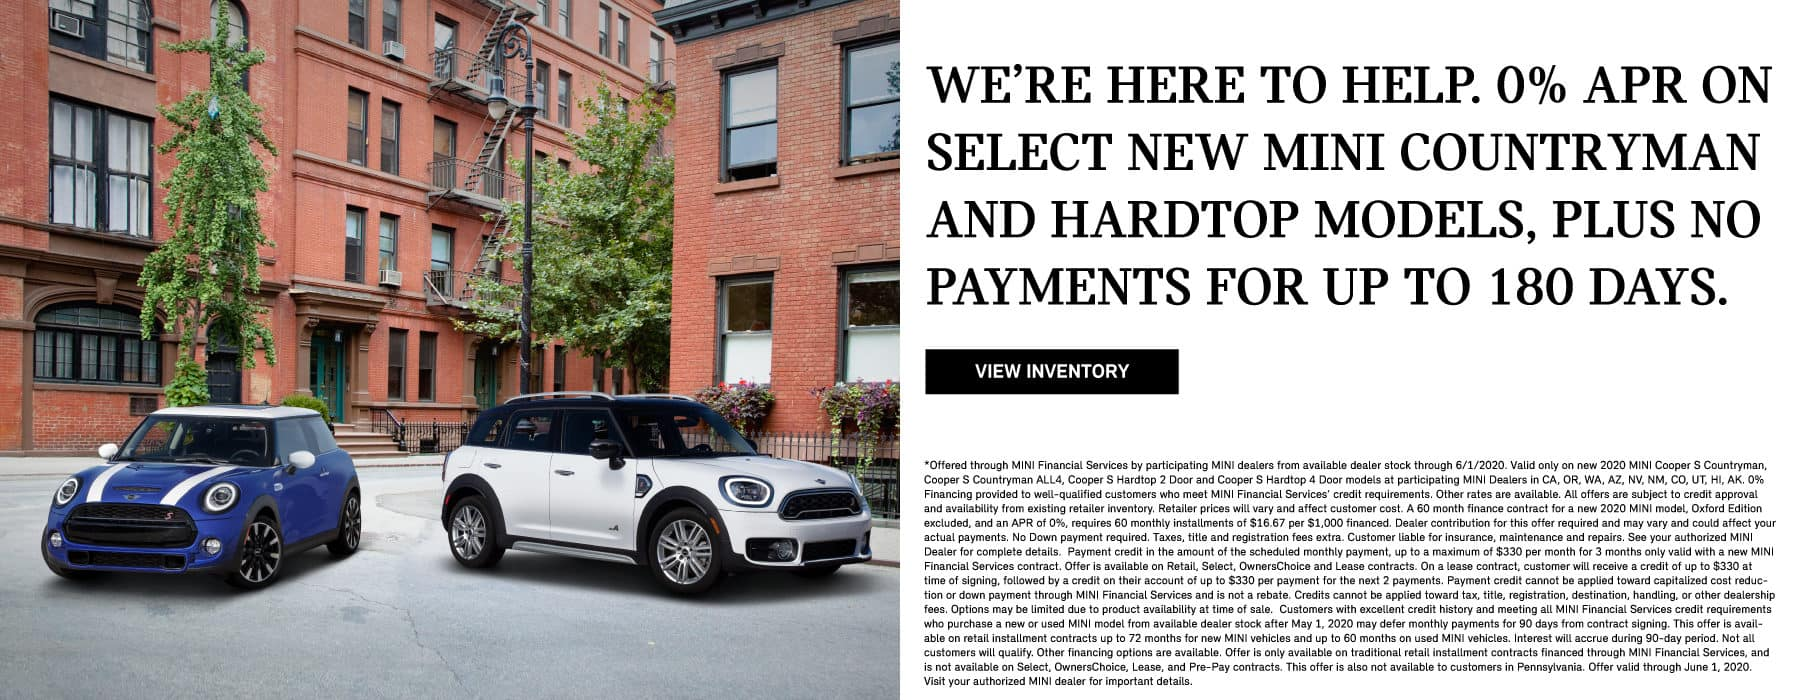 We are here to help. 0% APR on select new MINI Countryman and Hardtop models, plus no payments for up to 180 days. View Inventory